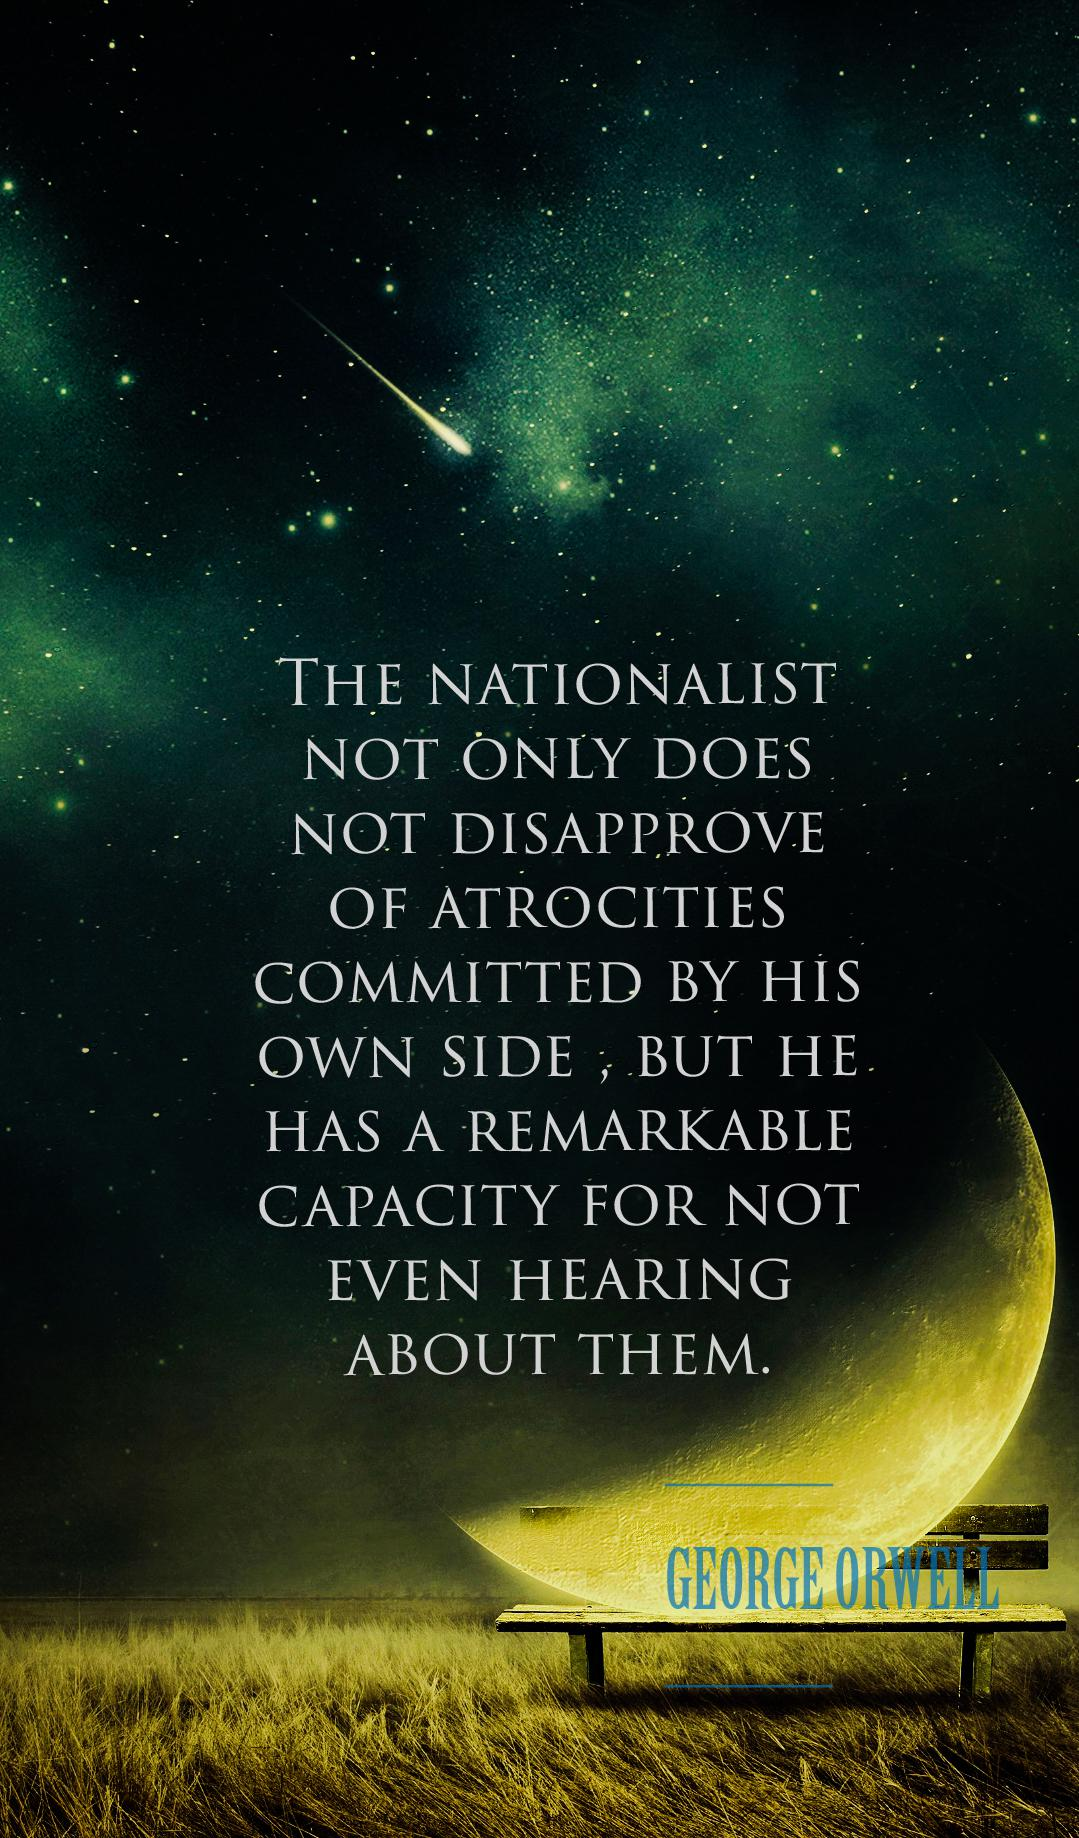 The Nationalist not only ……. George Orwell [ 1079 * 1838 ]